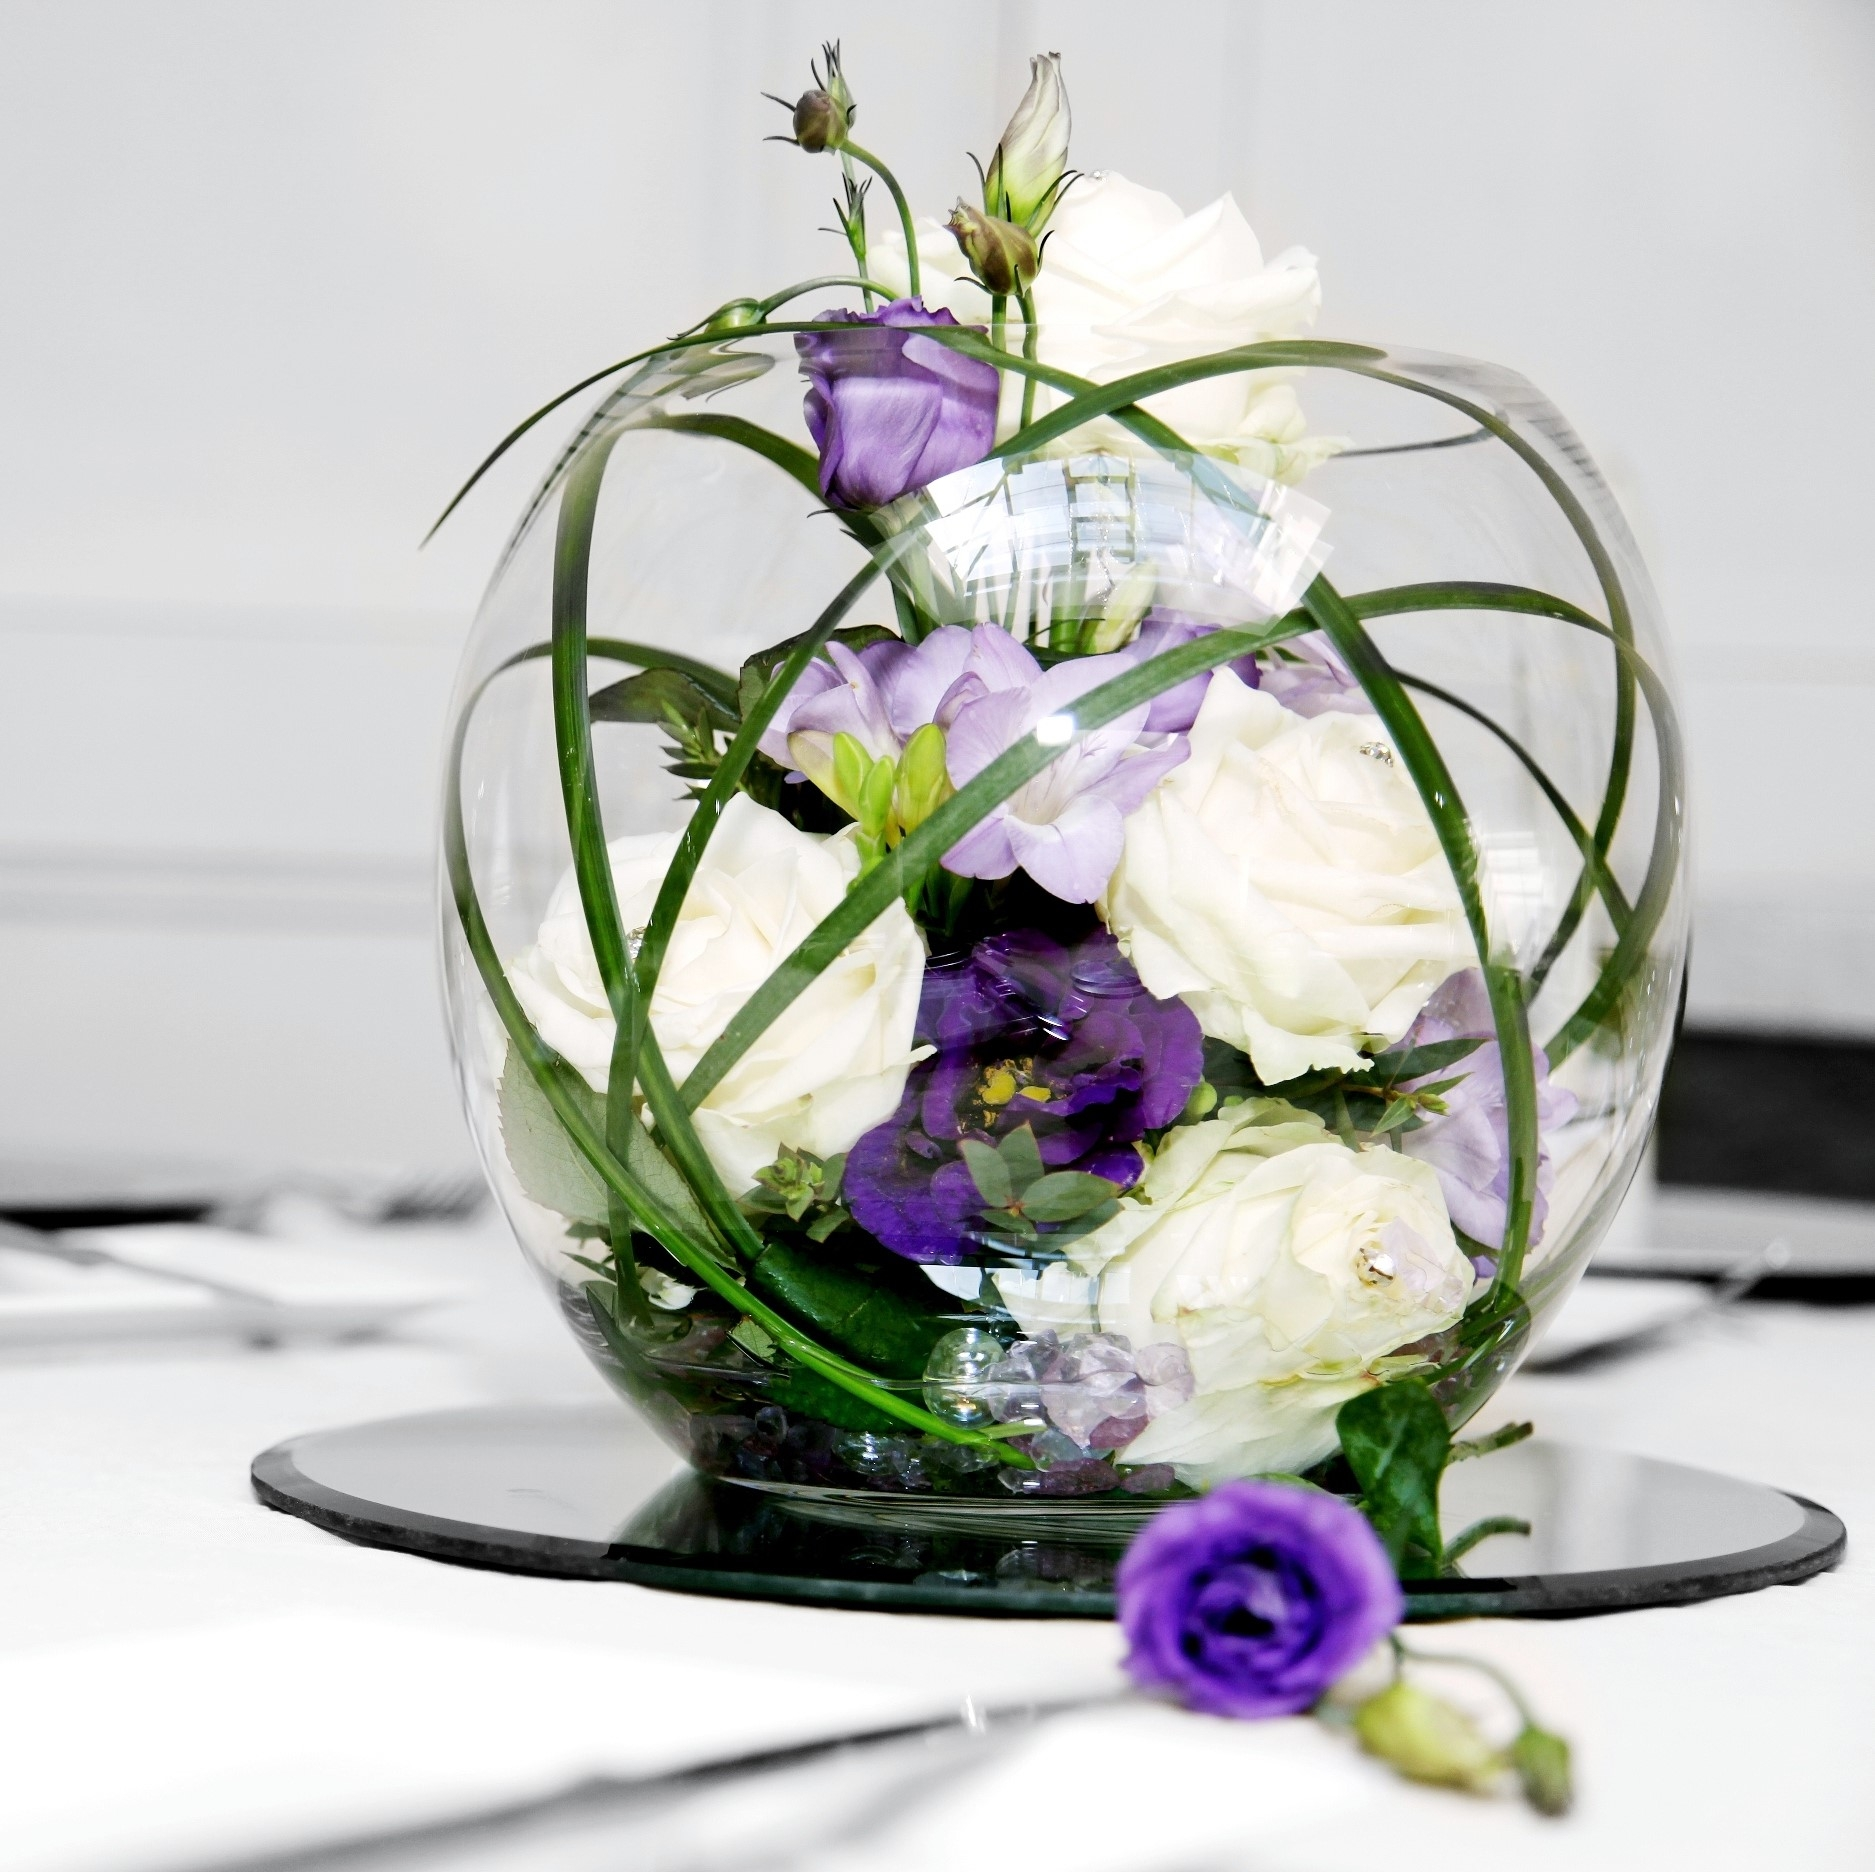 Table centre arrangements belper florist derby flowers for Table arrangements